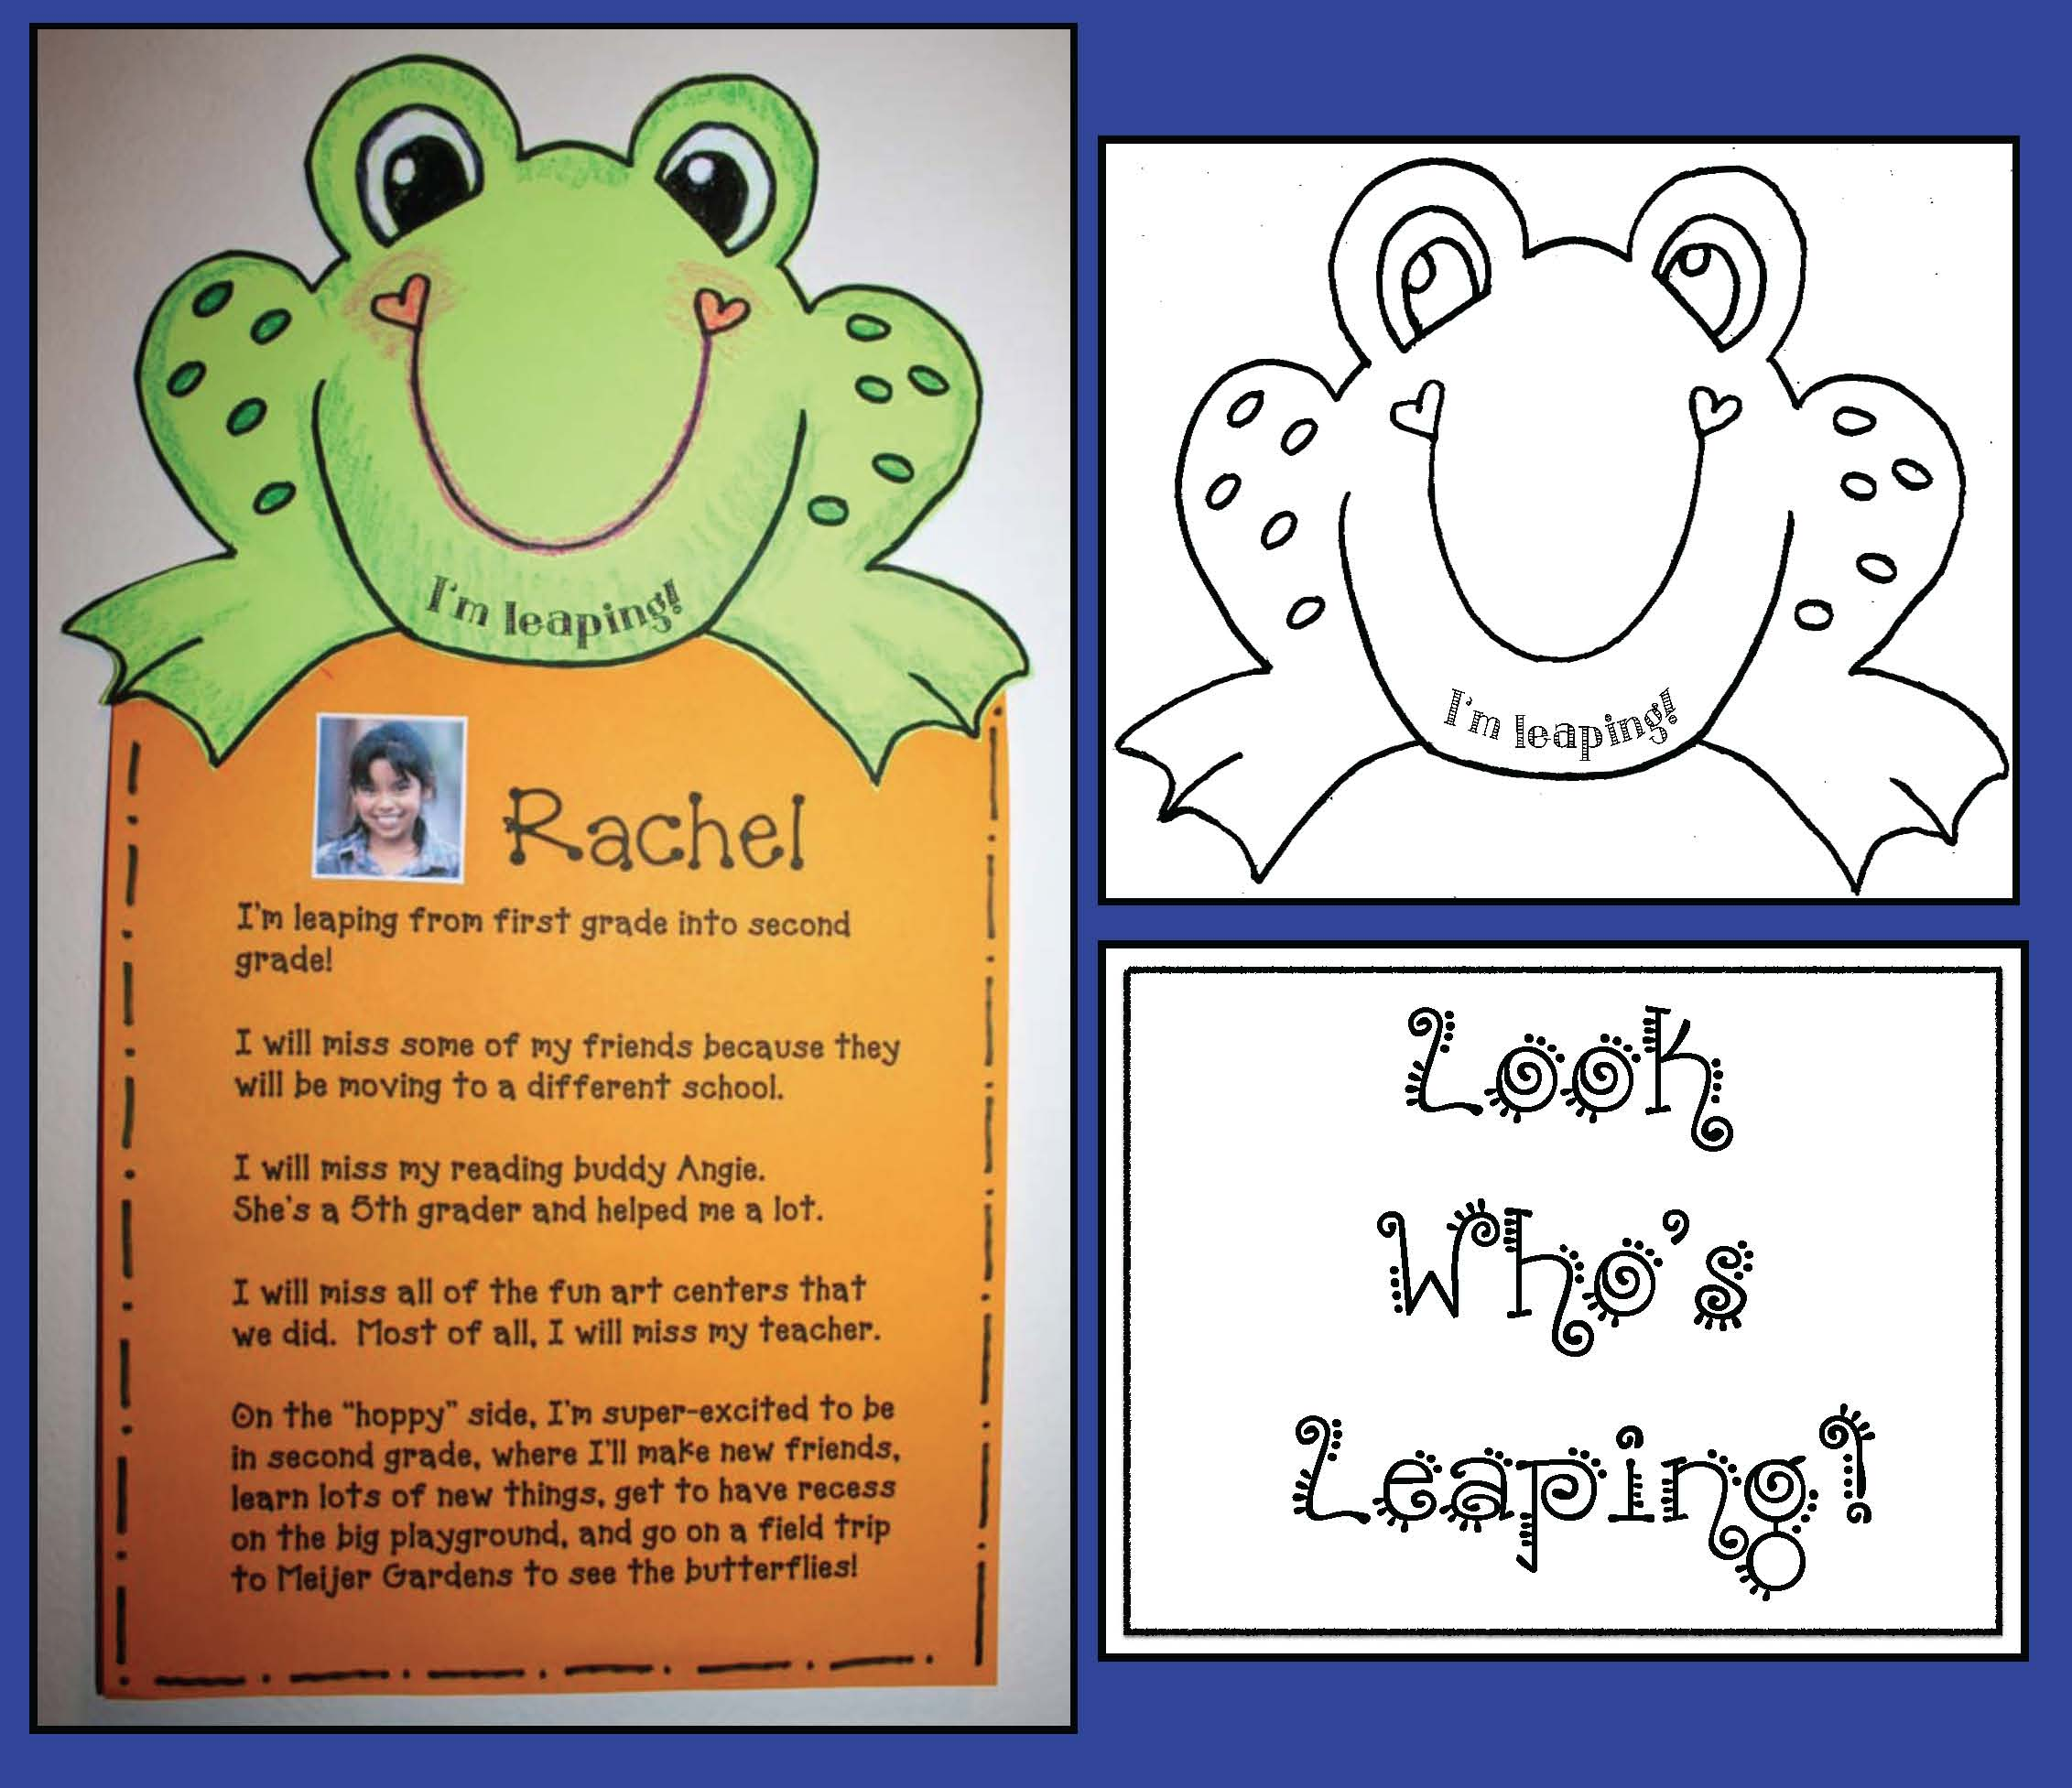 look whos leaping activities, frog crafts, frog writing prompts, back to school crafts, back to school treats, back to school ideas, back to school bulletin boards, back to school activities, back to school writing prompts, end of the year writing prompts, end of the year activities, end of they year memory books, end of the year bulletin boards, summer writing prompts, end of the year crafts, free school certificates, certificates, bookmarks, free bookmarks, coloring pages